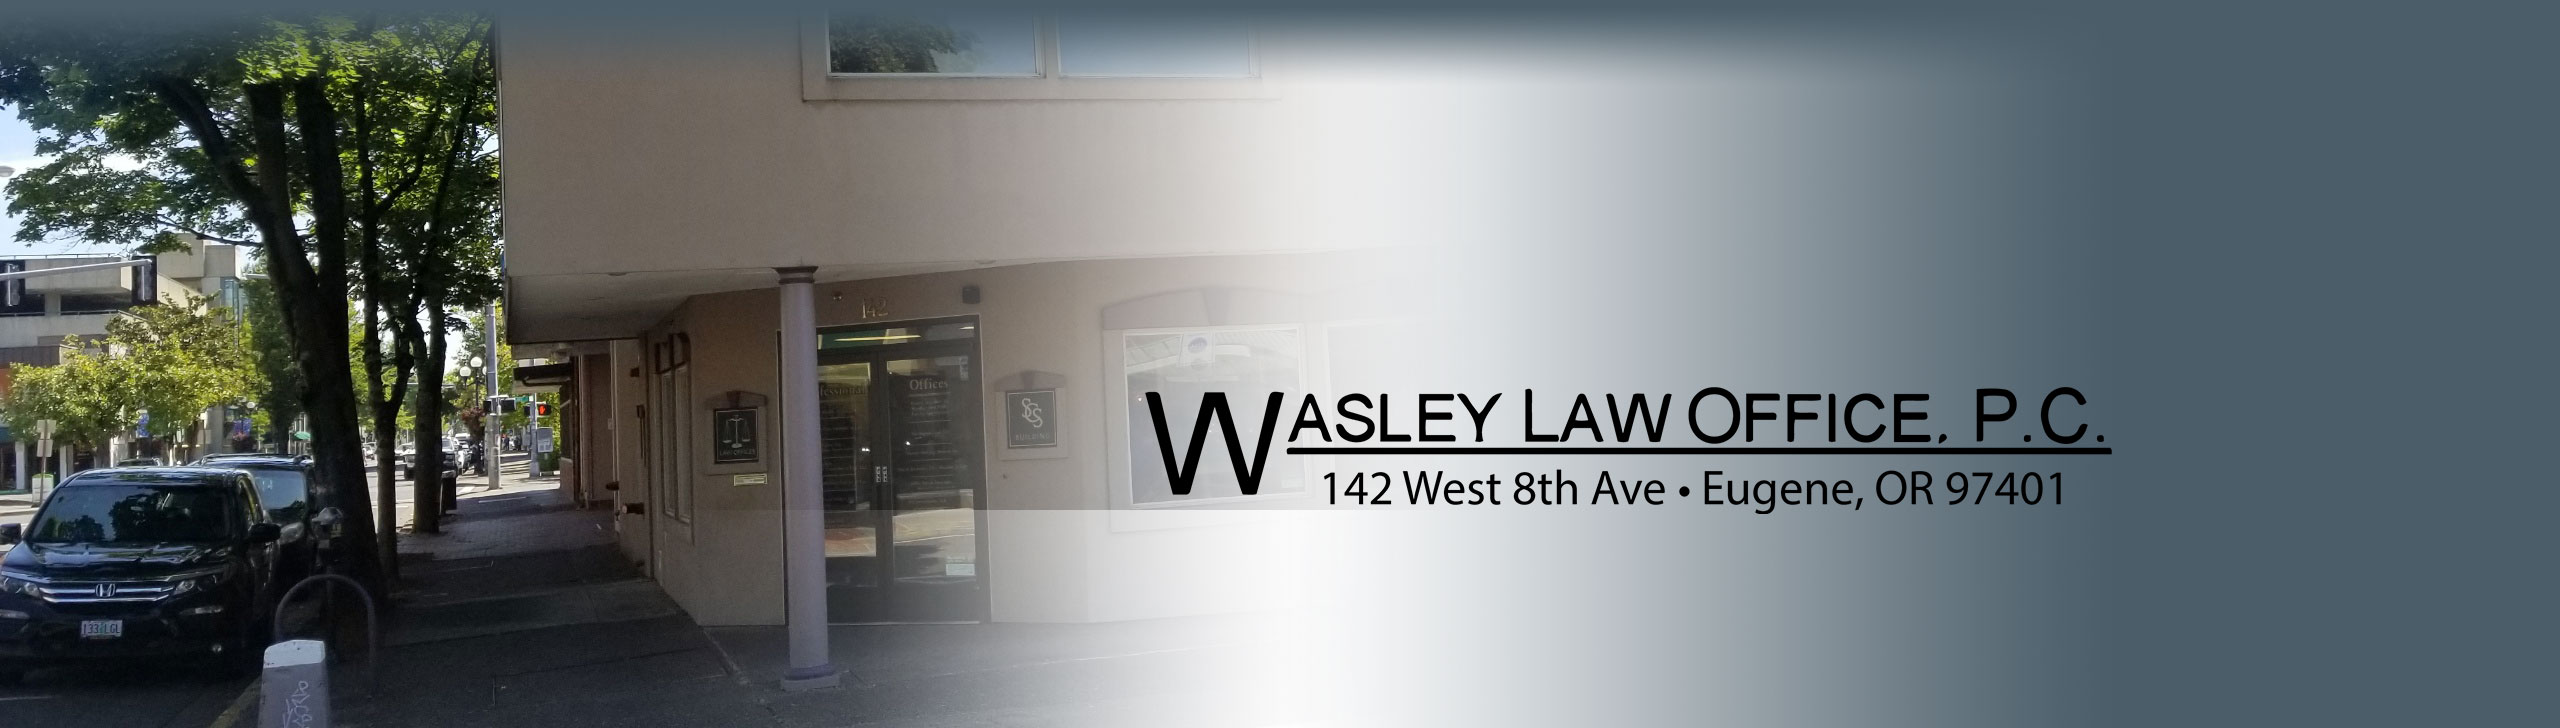 Wasley Law Office, Attorney in Eugene Oregon